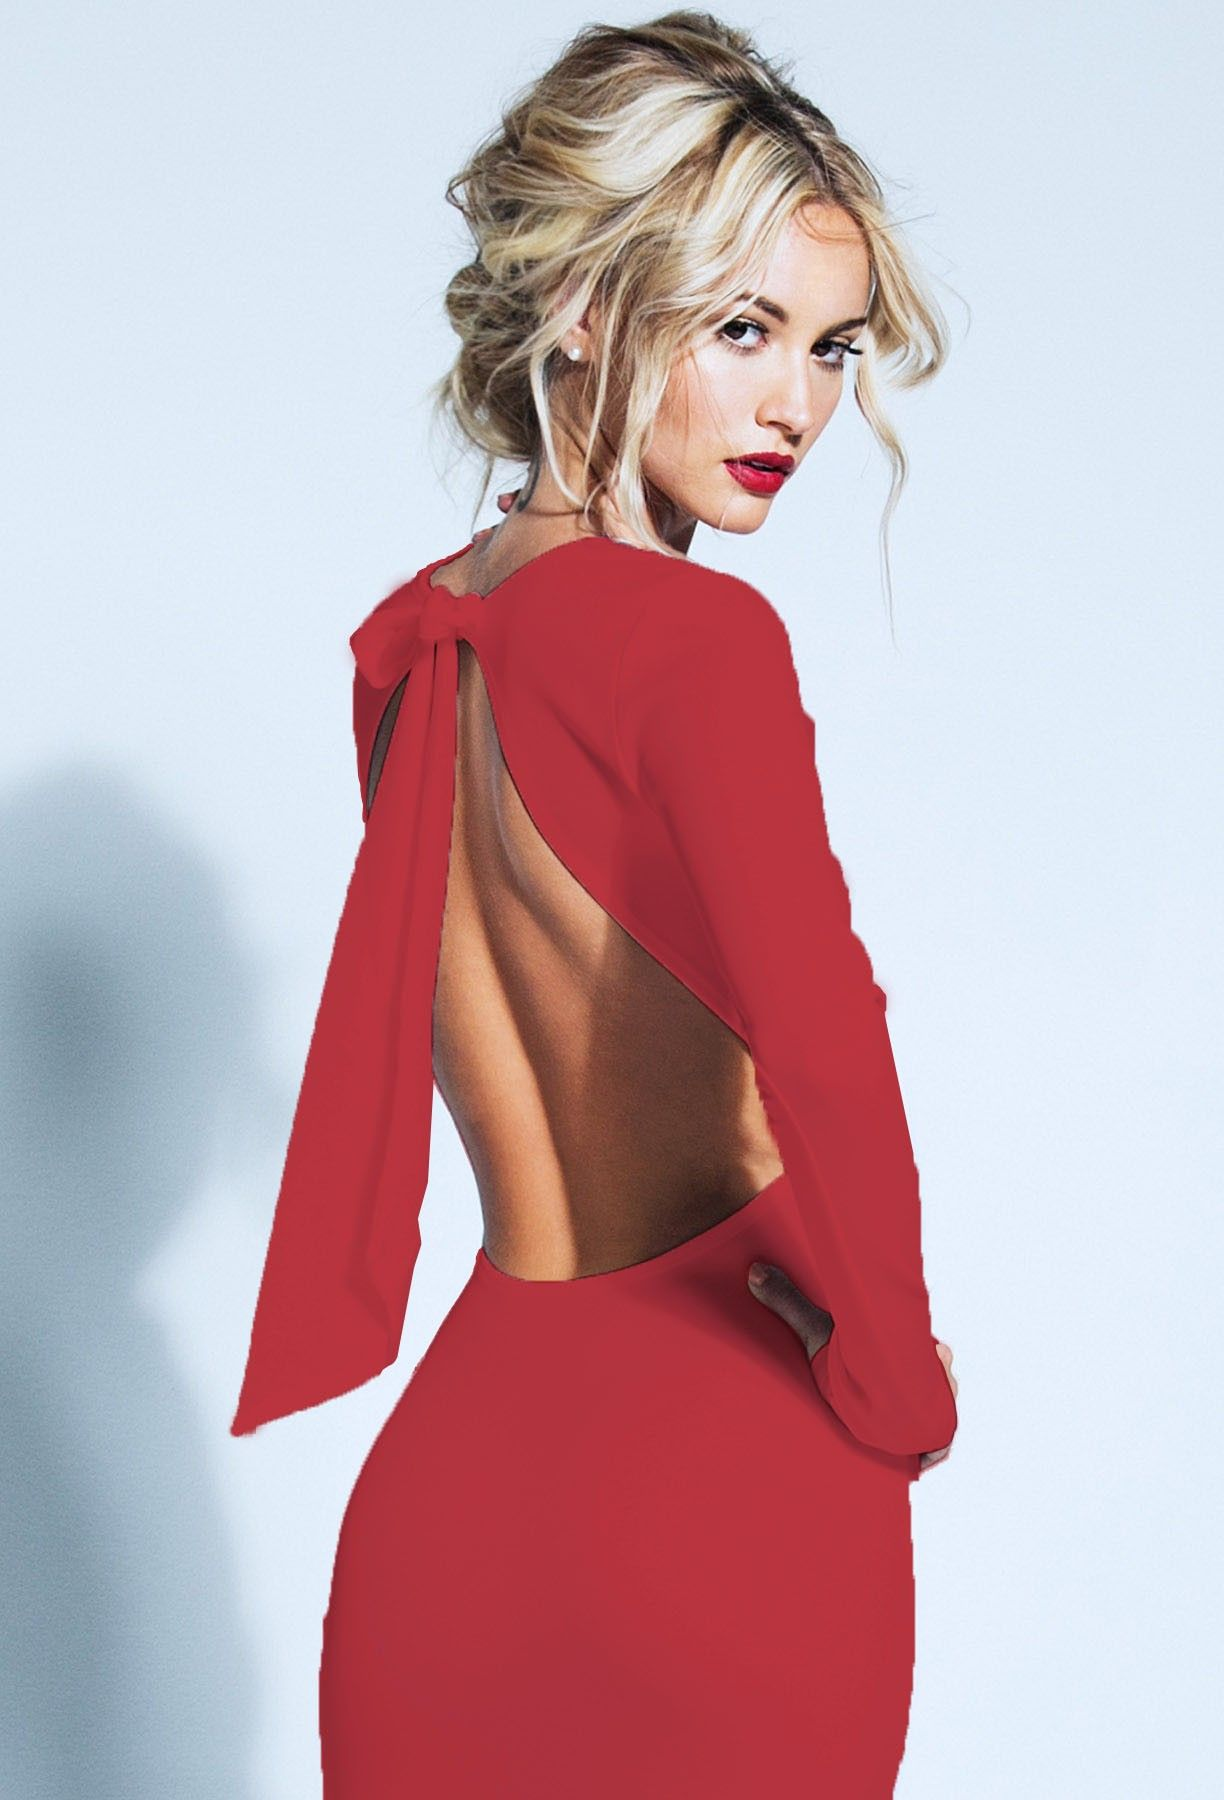 backless dress tumblr - Buscar con Google | Vestidograd | Pinterest